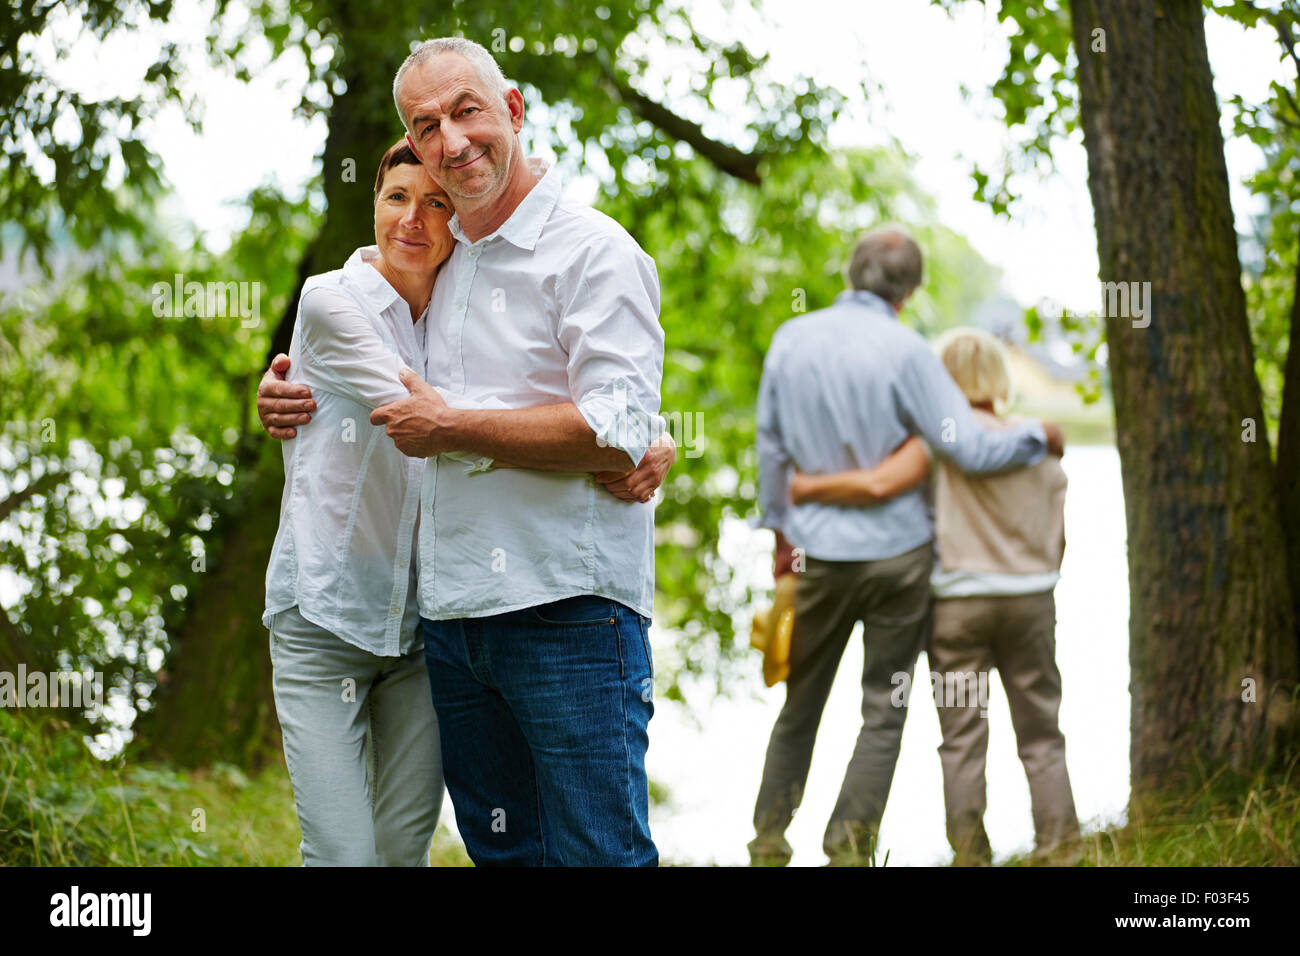 Two happy senior couples embracing in garden of retirement home - Stock Image